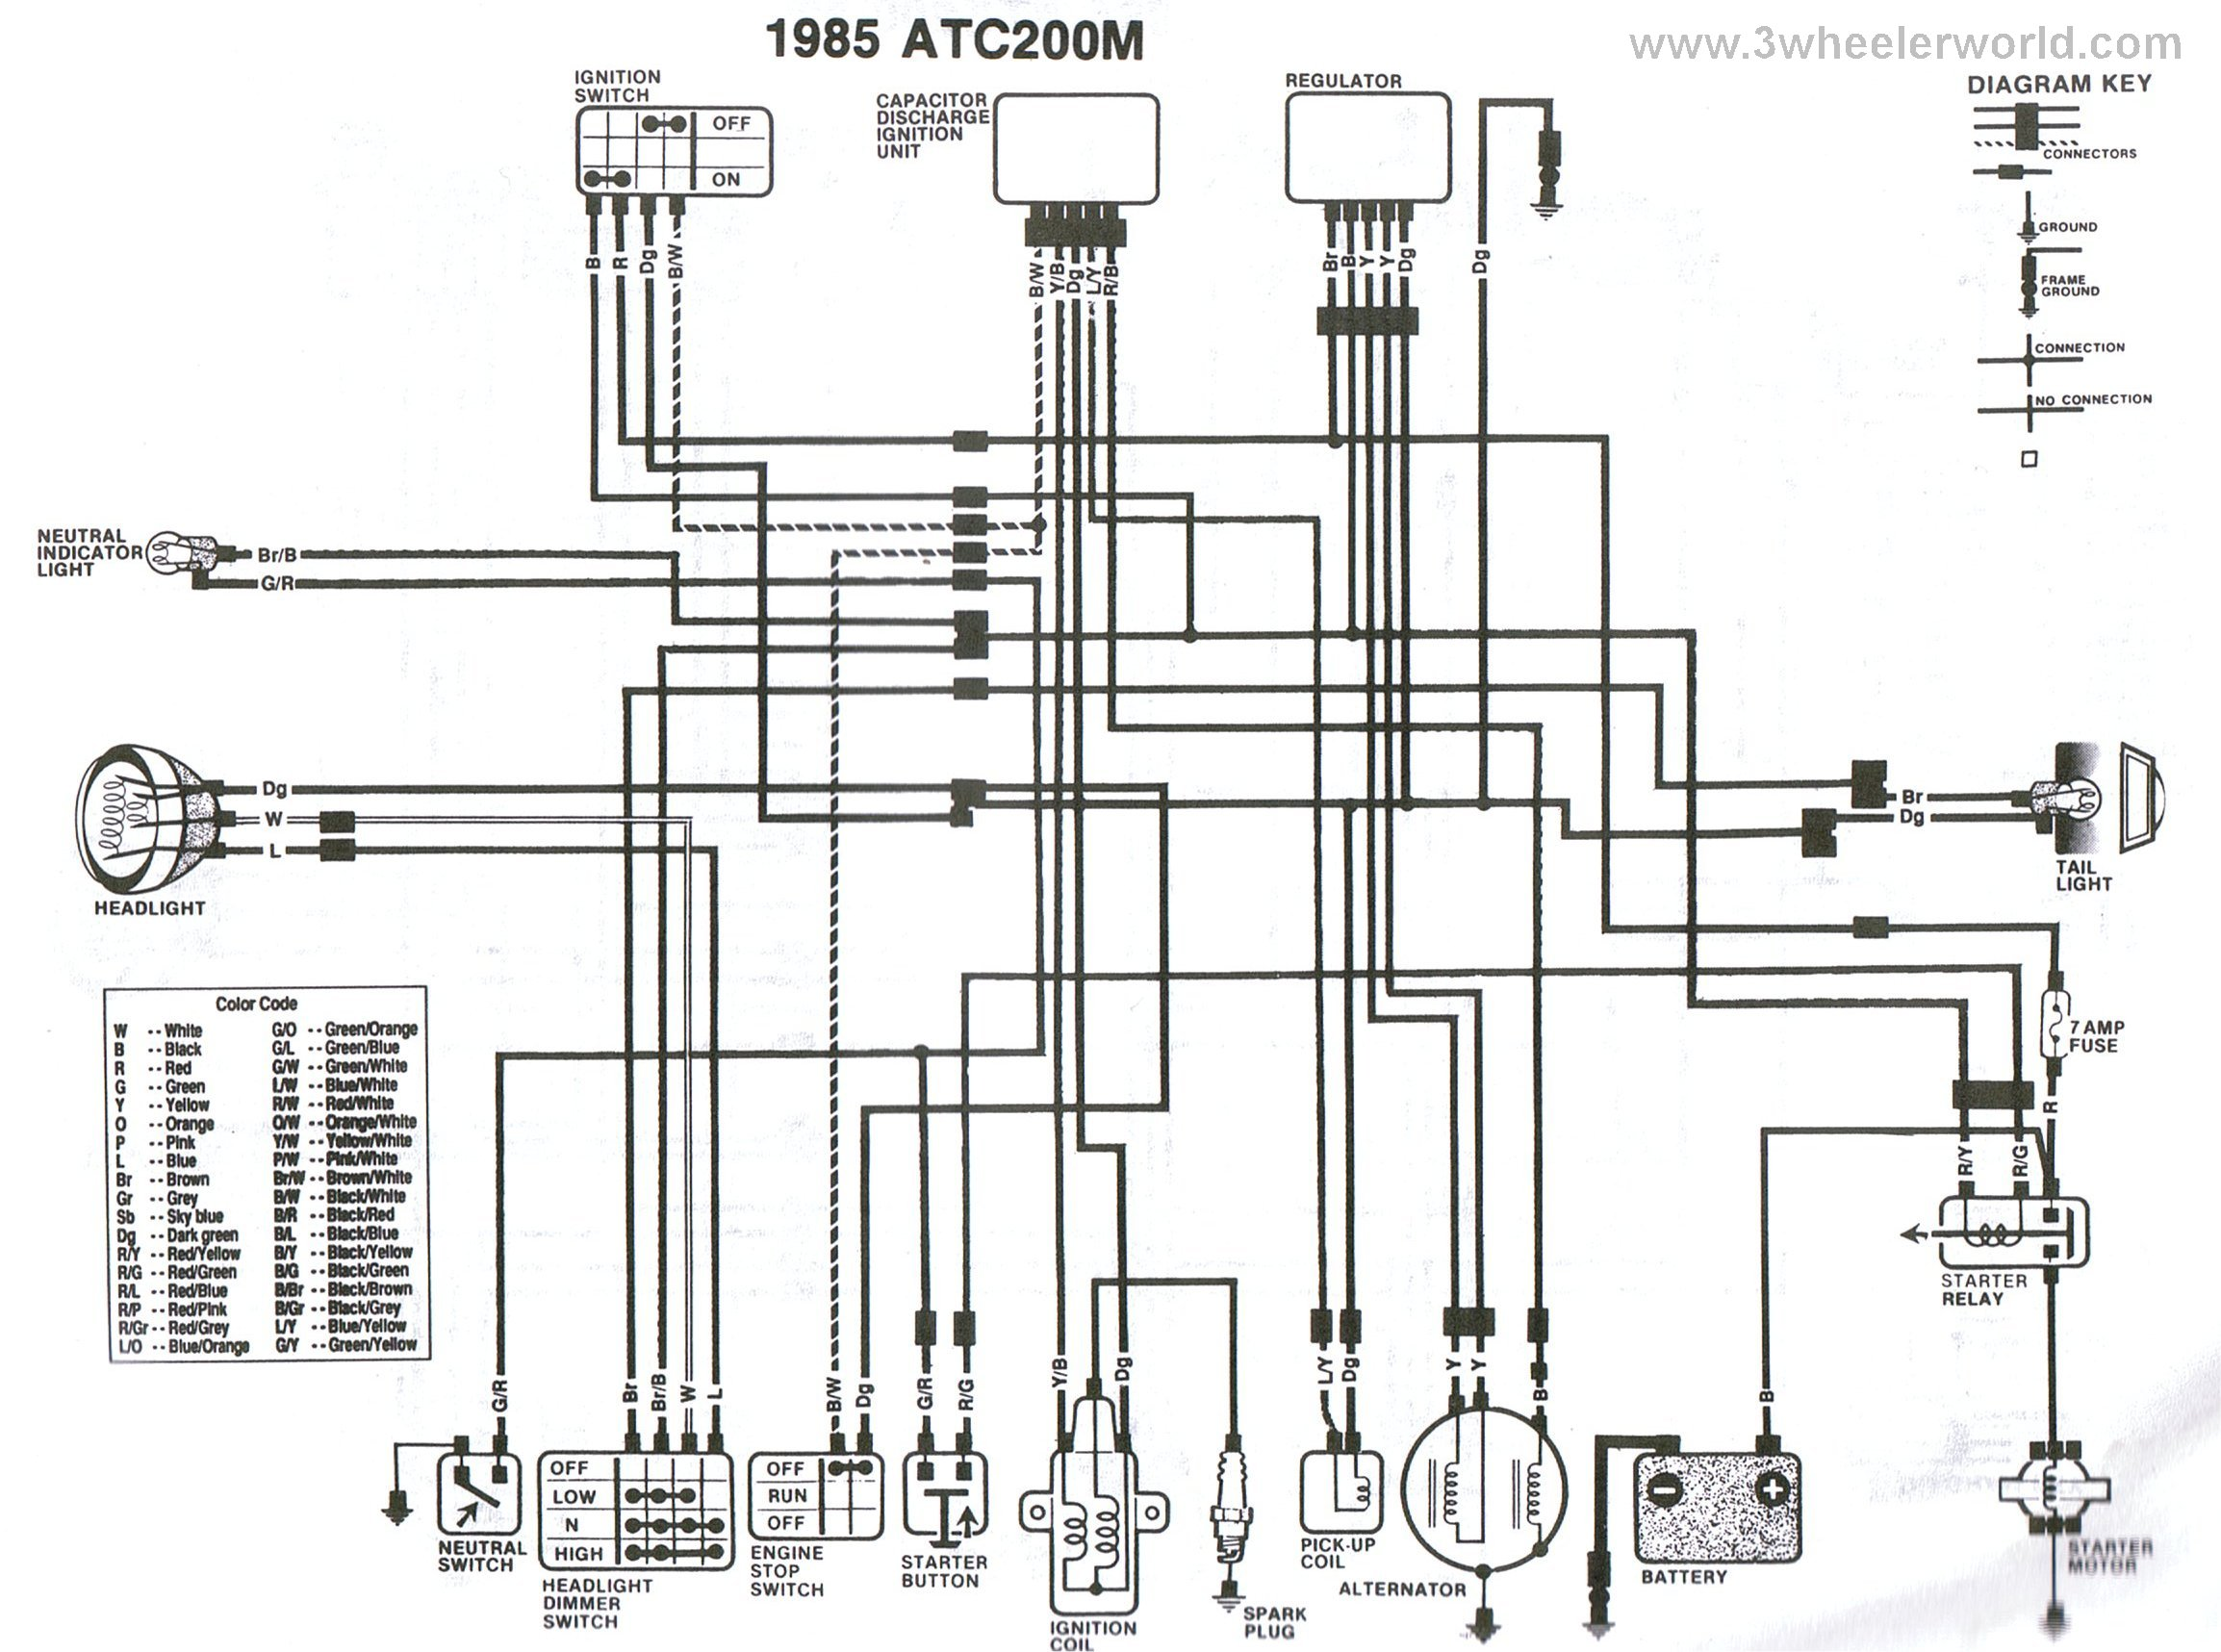 ATC200Mx85 3 wheeler world tech help honda wiring diagrams honda atv wiring diagram at n-0.co